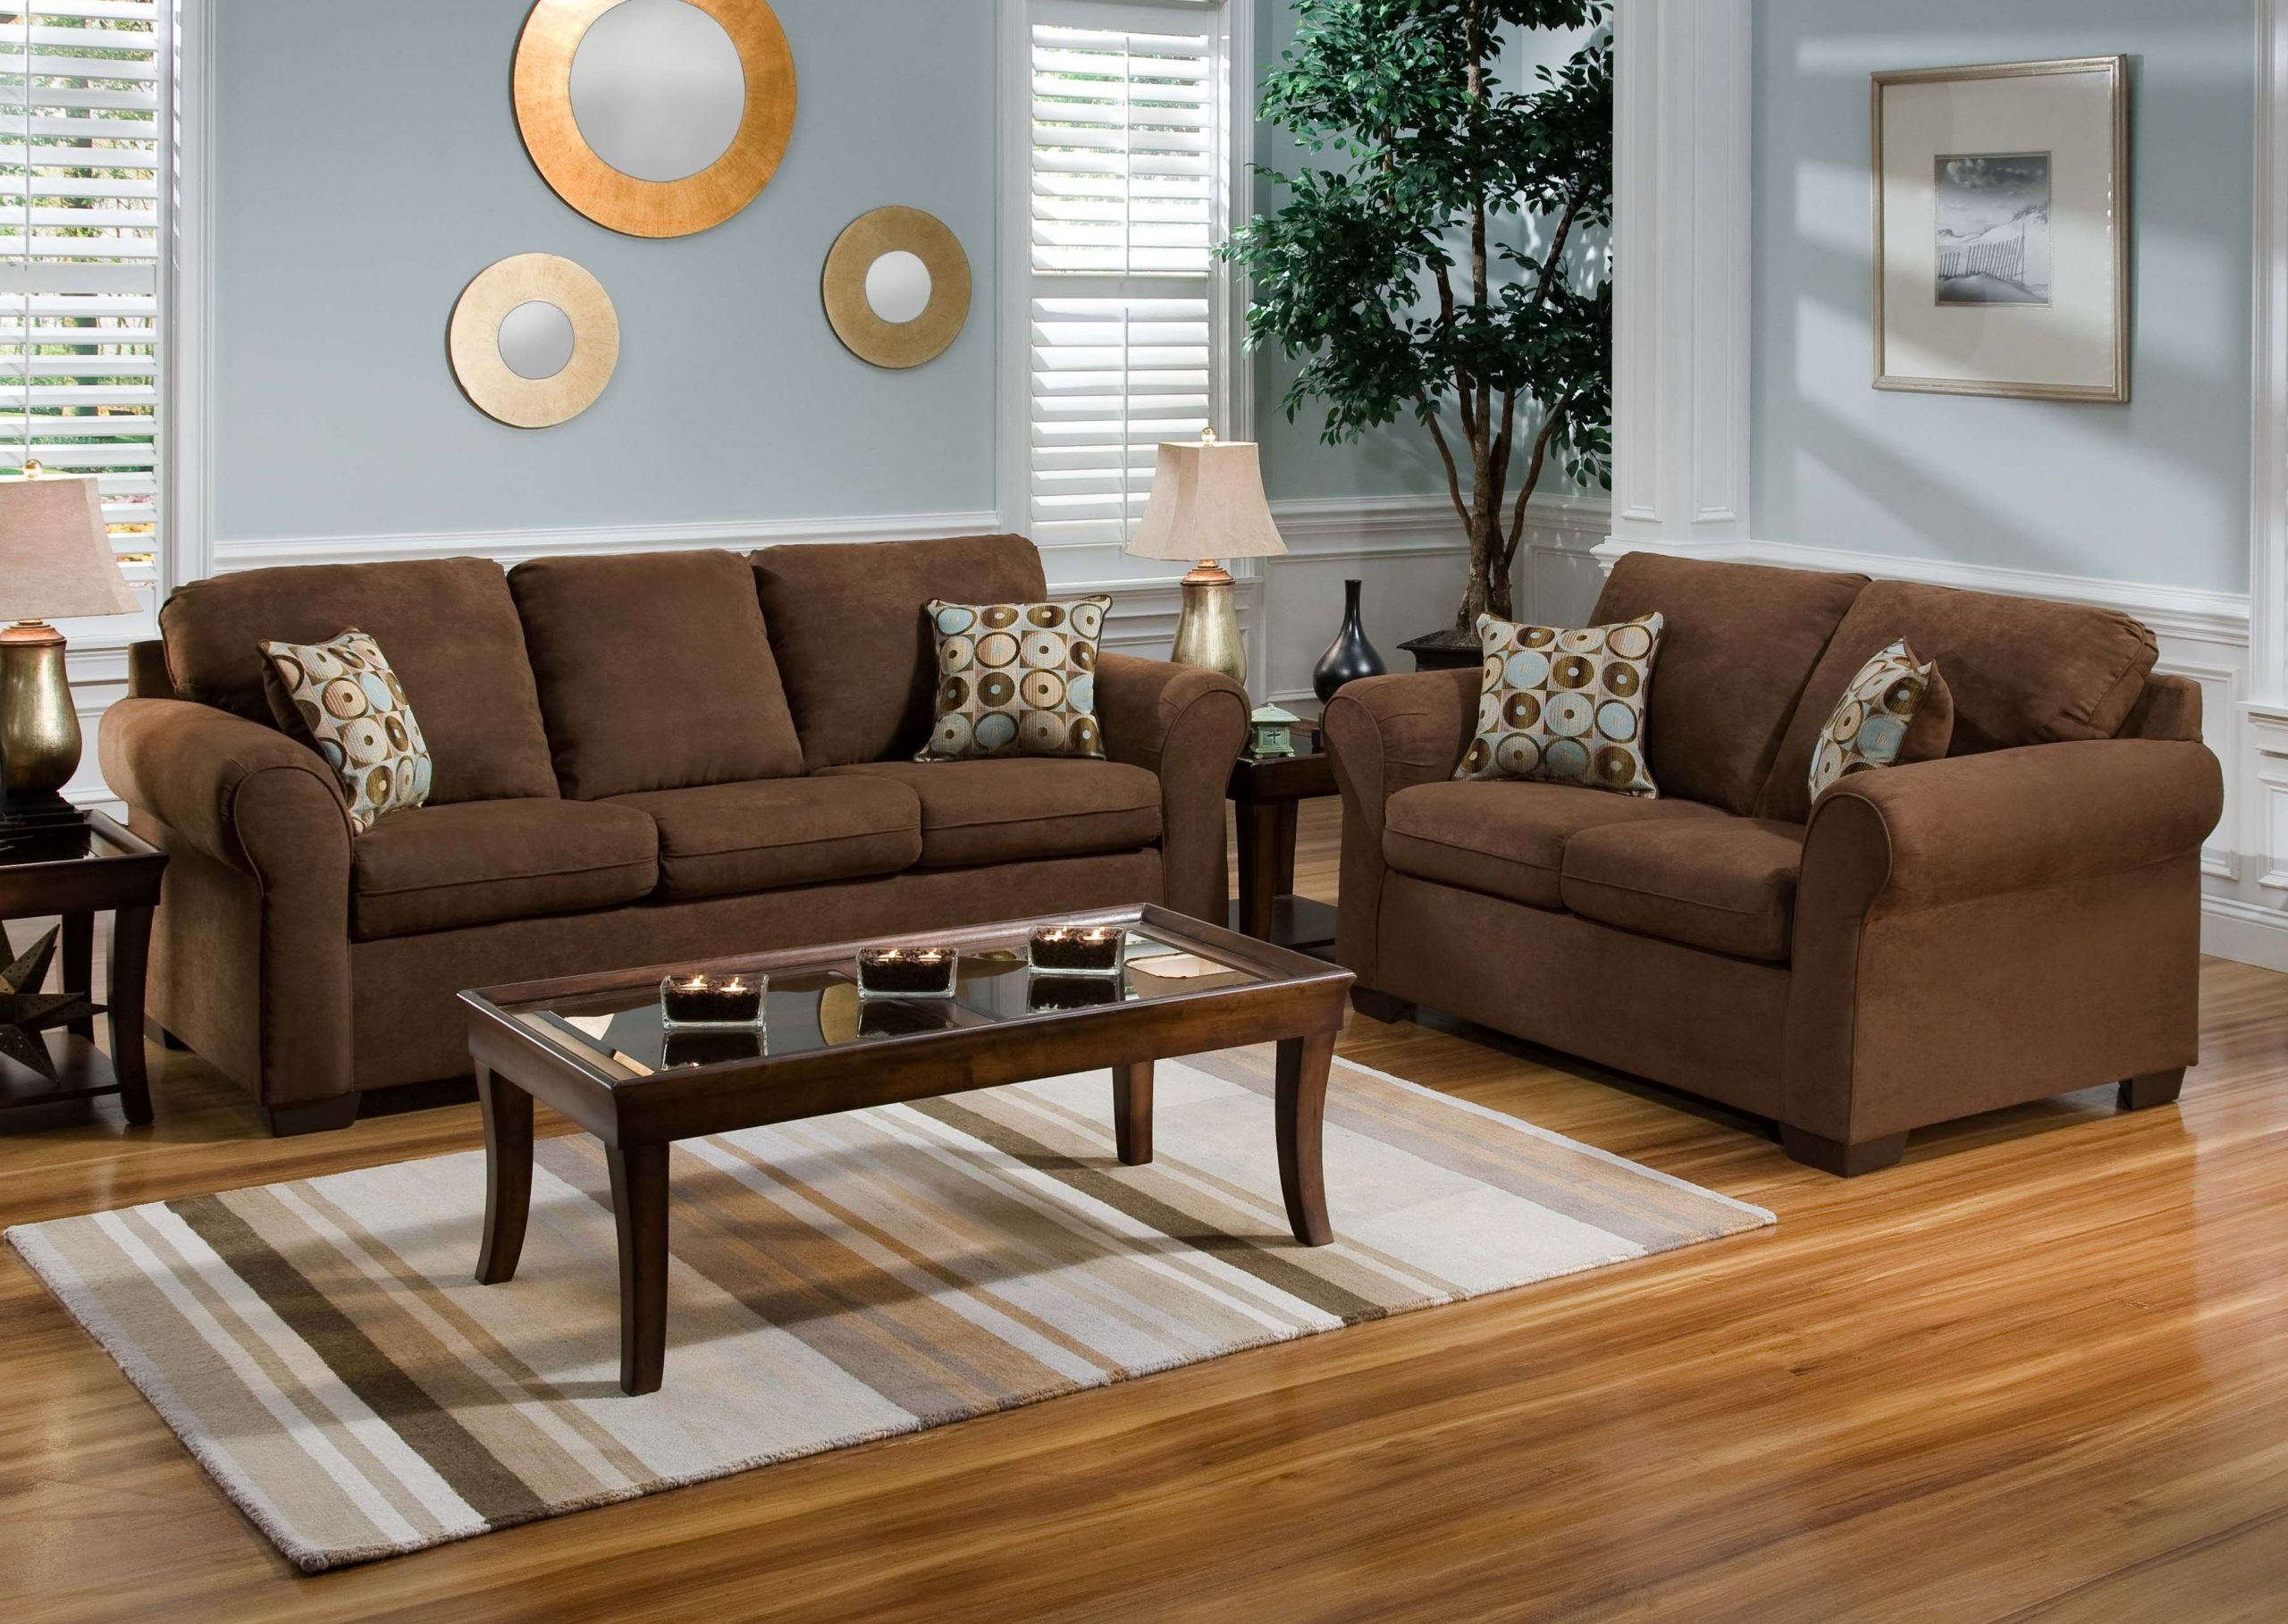 Living Room Ideas With Brown Sofas – Dream House Ideas